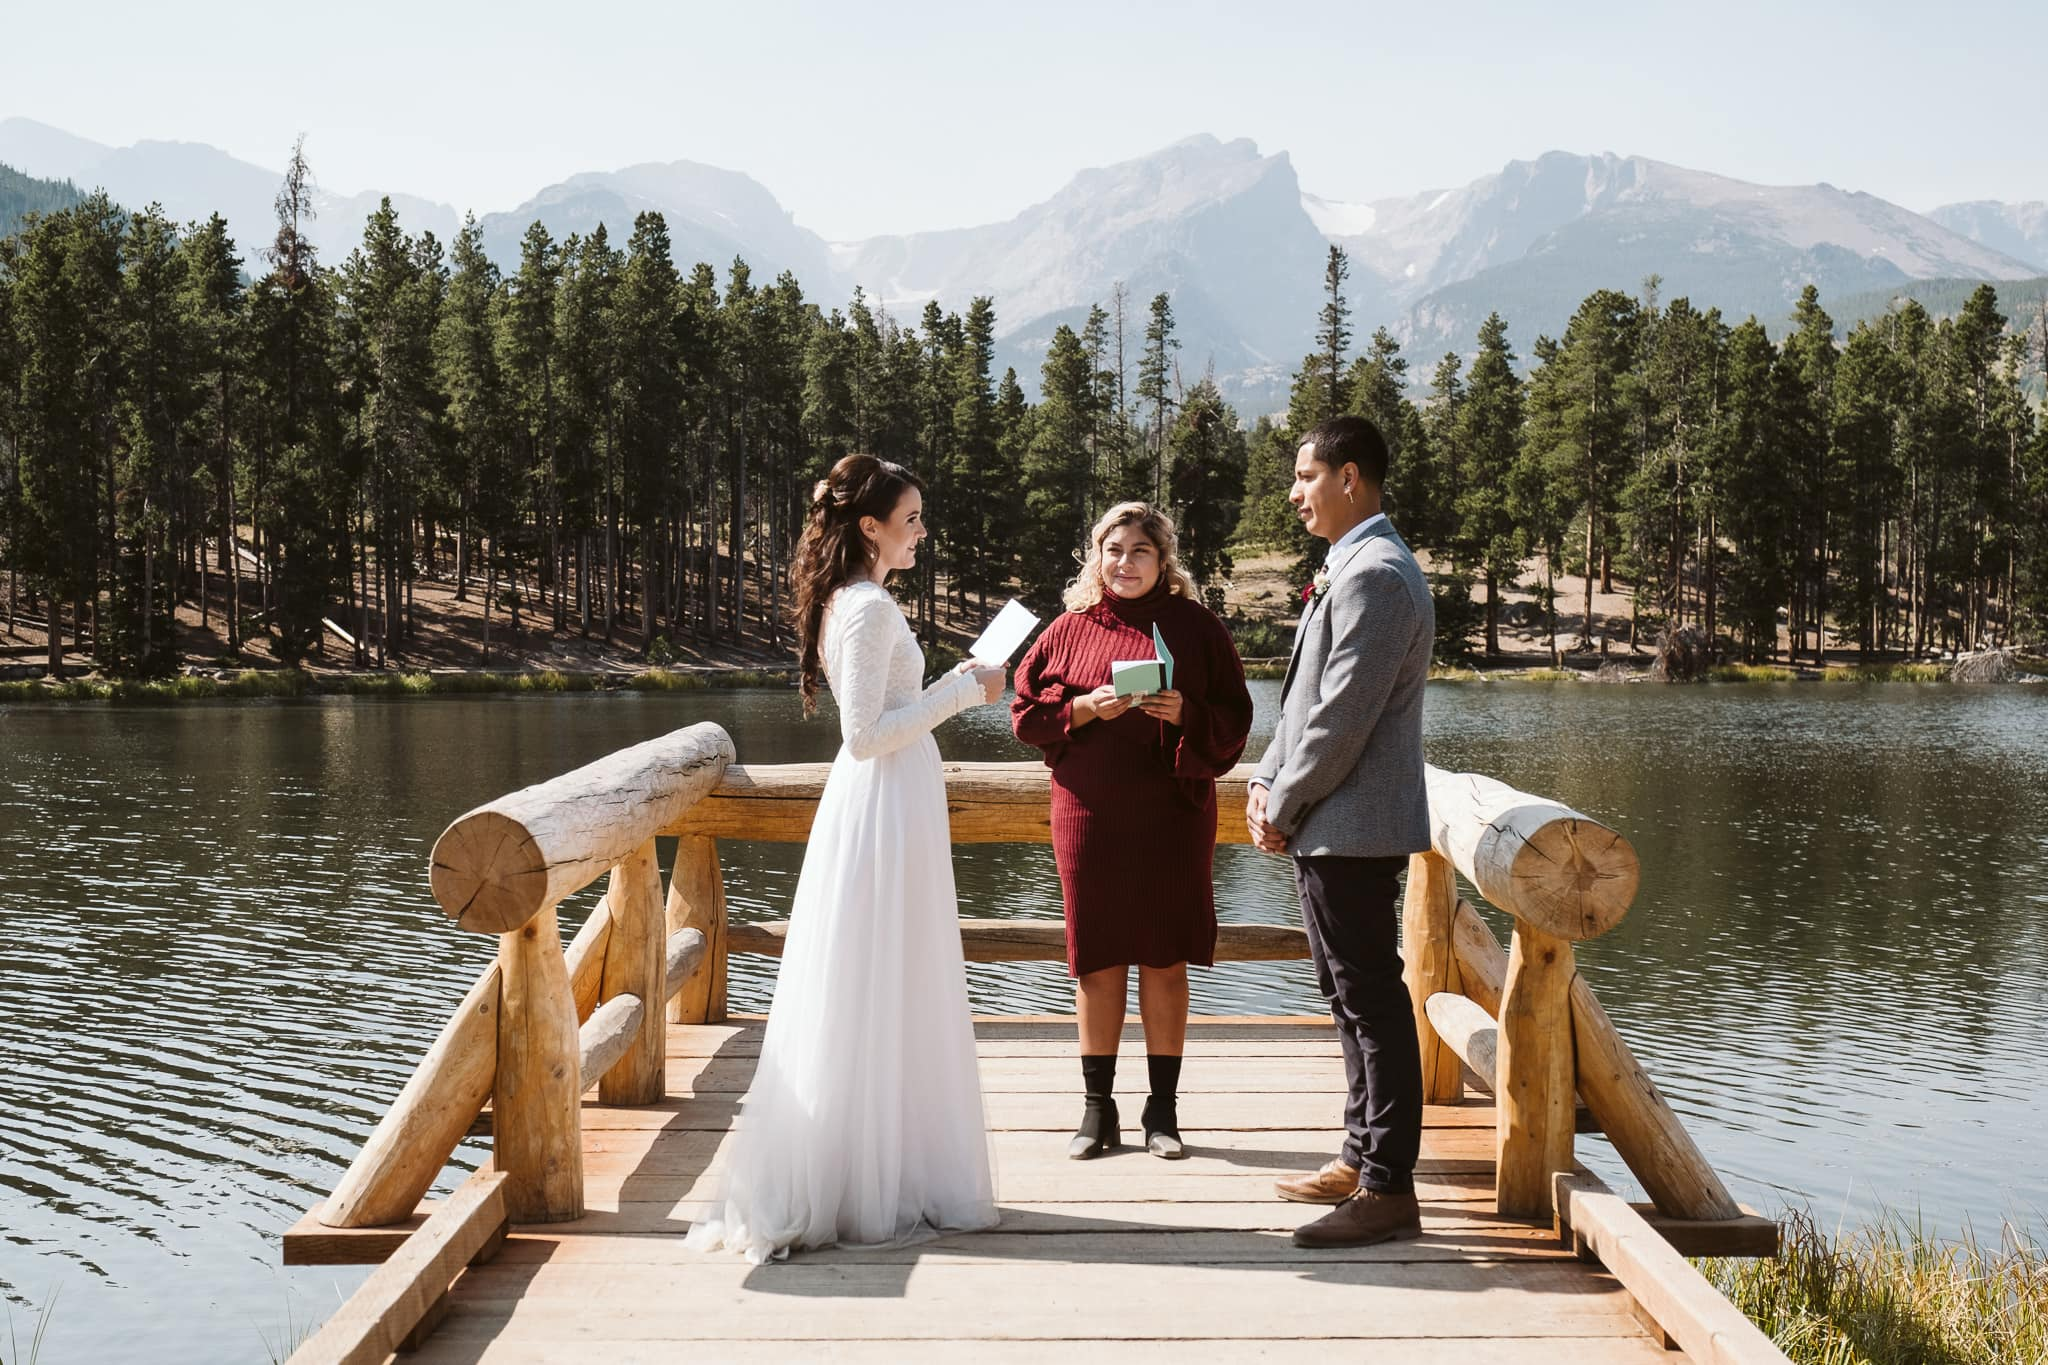 Elopement ceremony in Rocky Mountain National Park